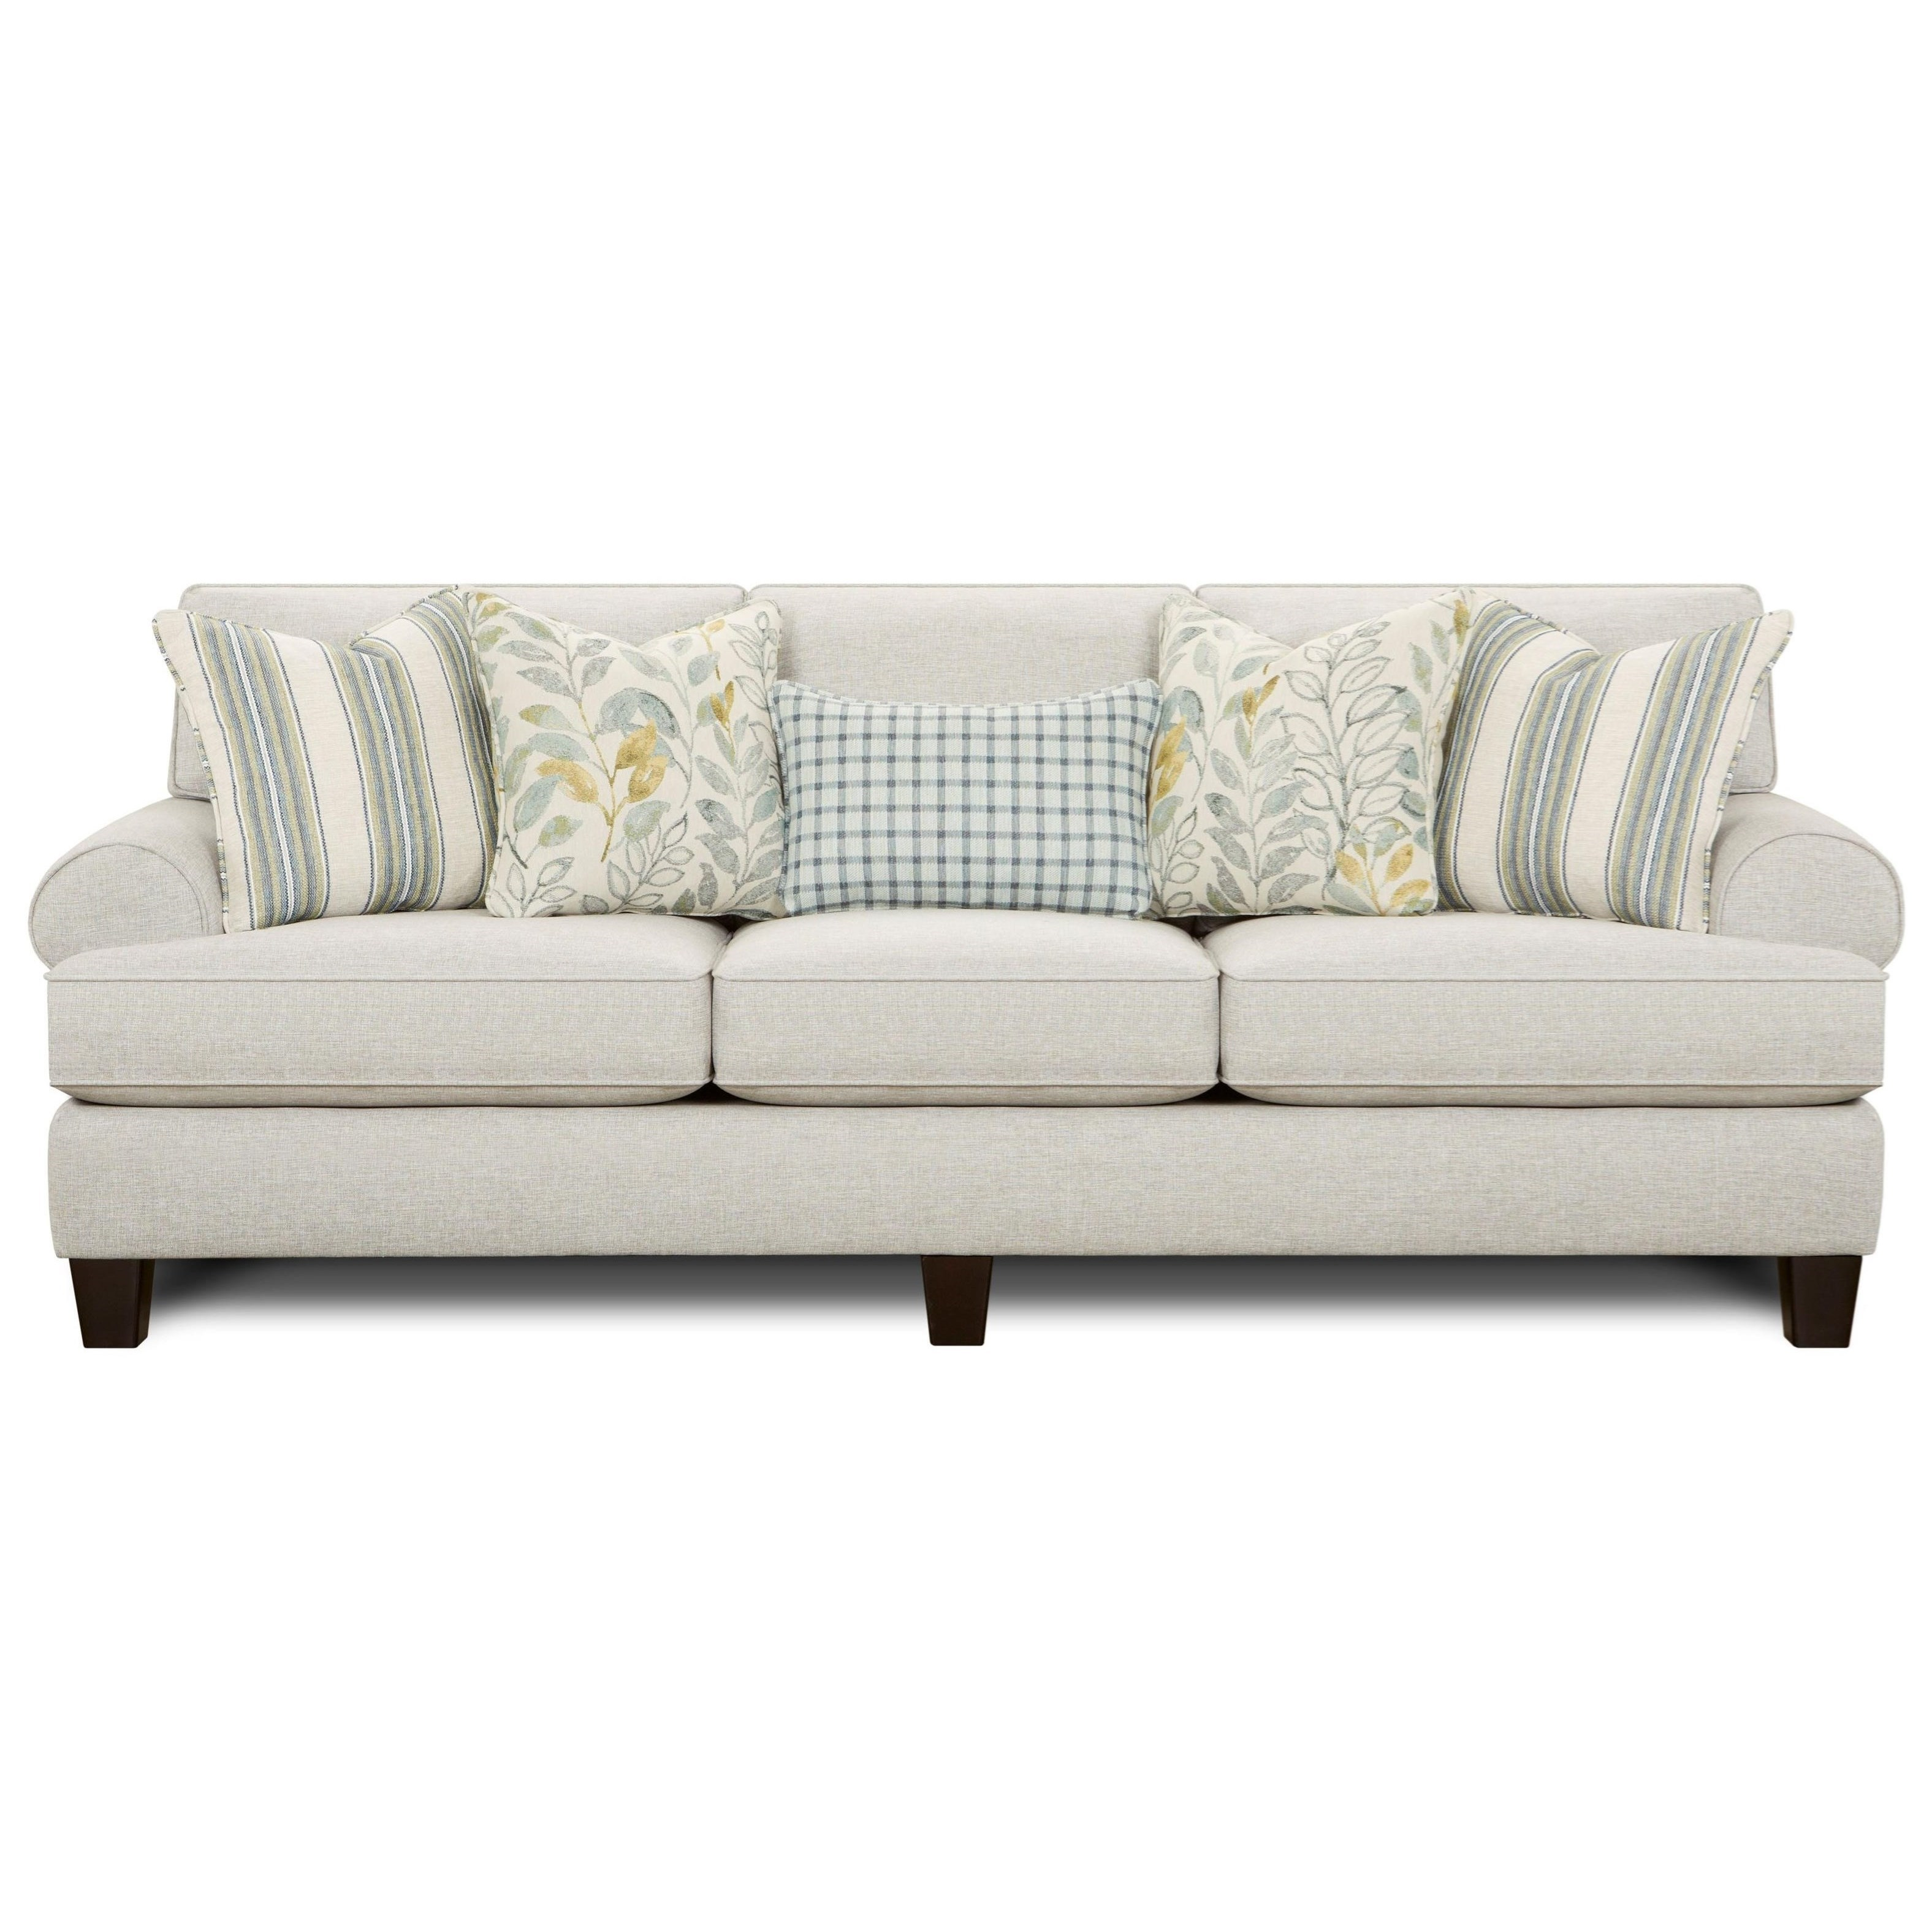 4200 Sofa by Fusion Furniture at Prime Brothers Furniture